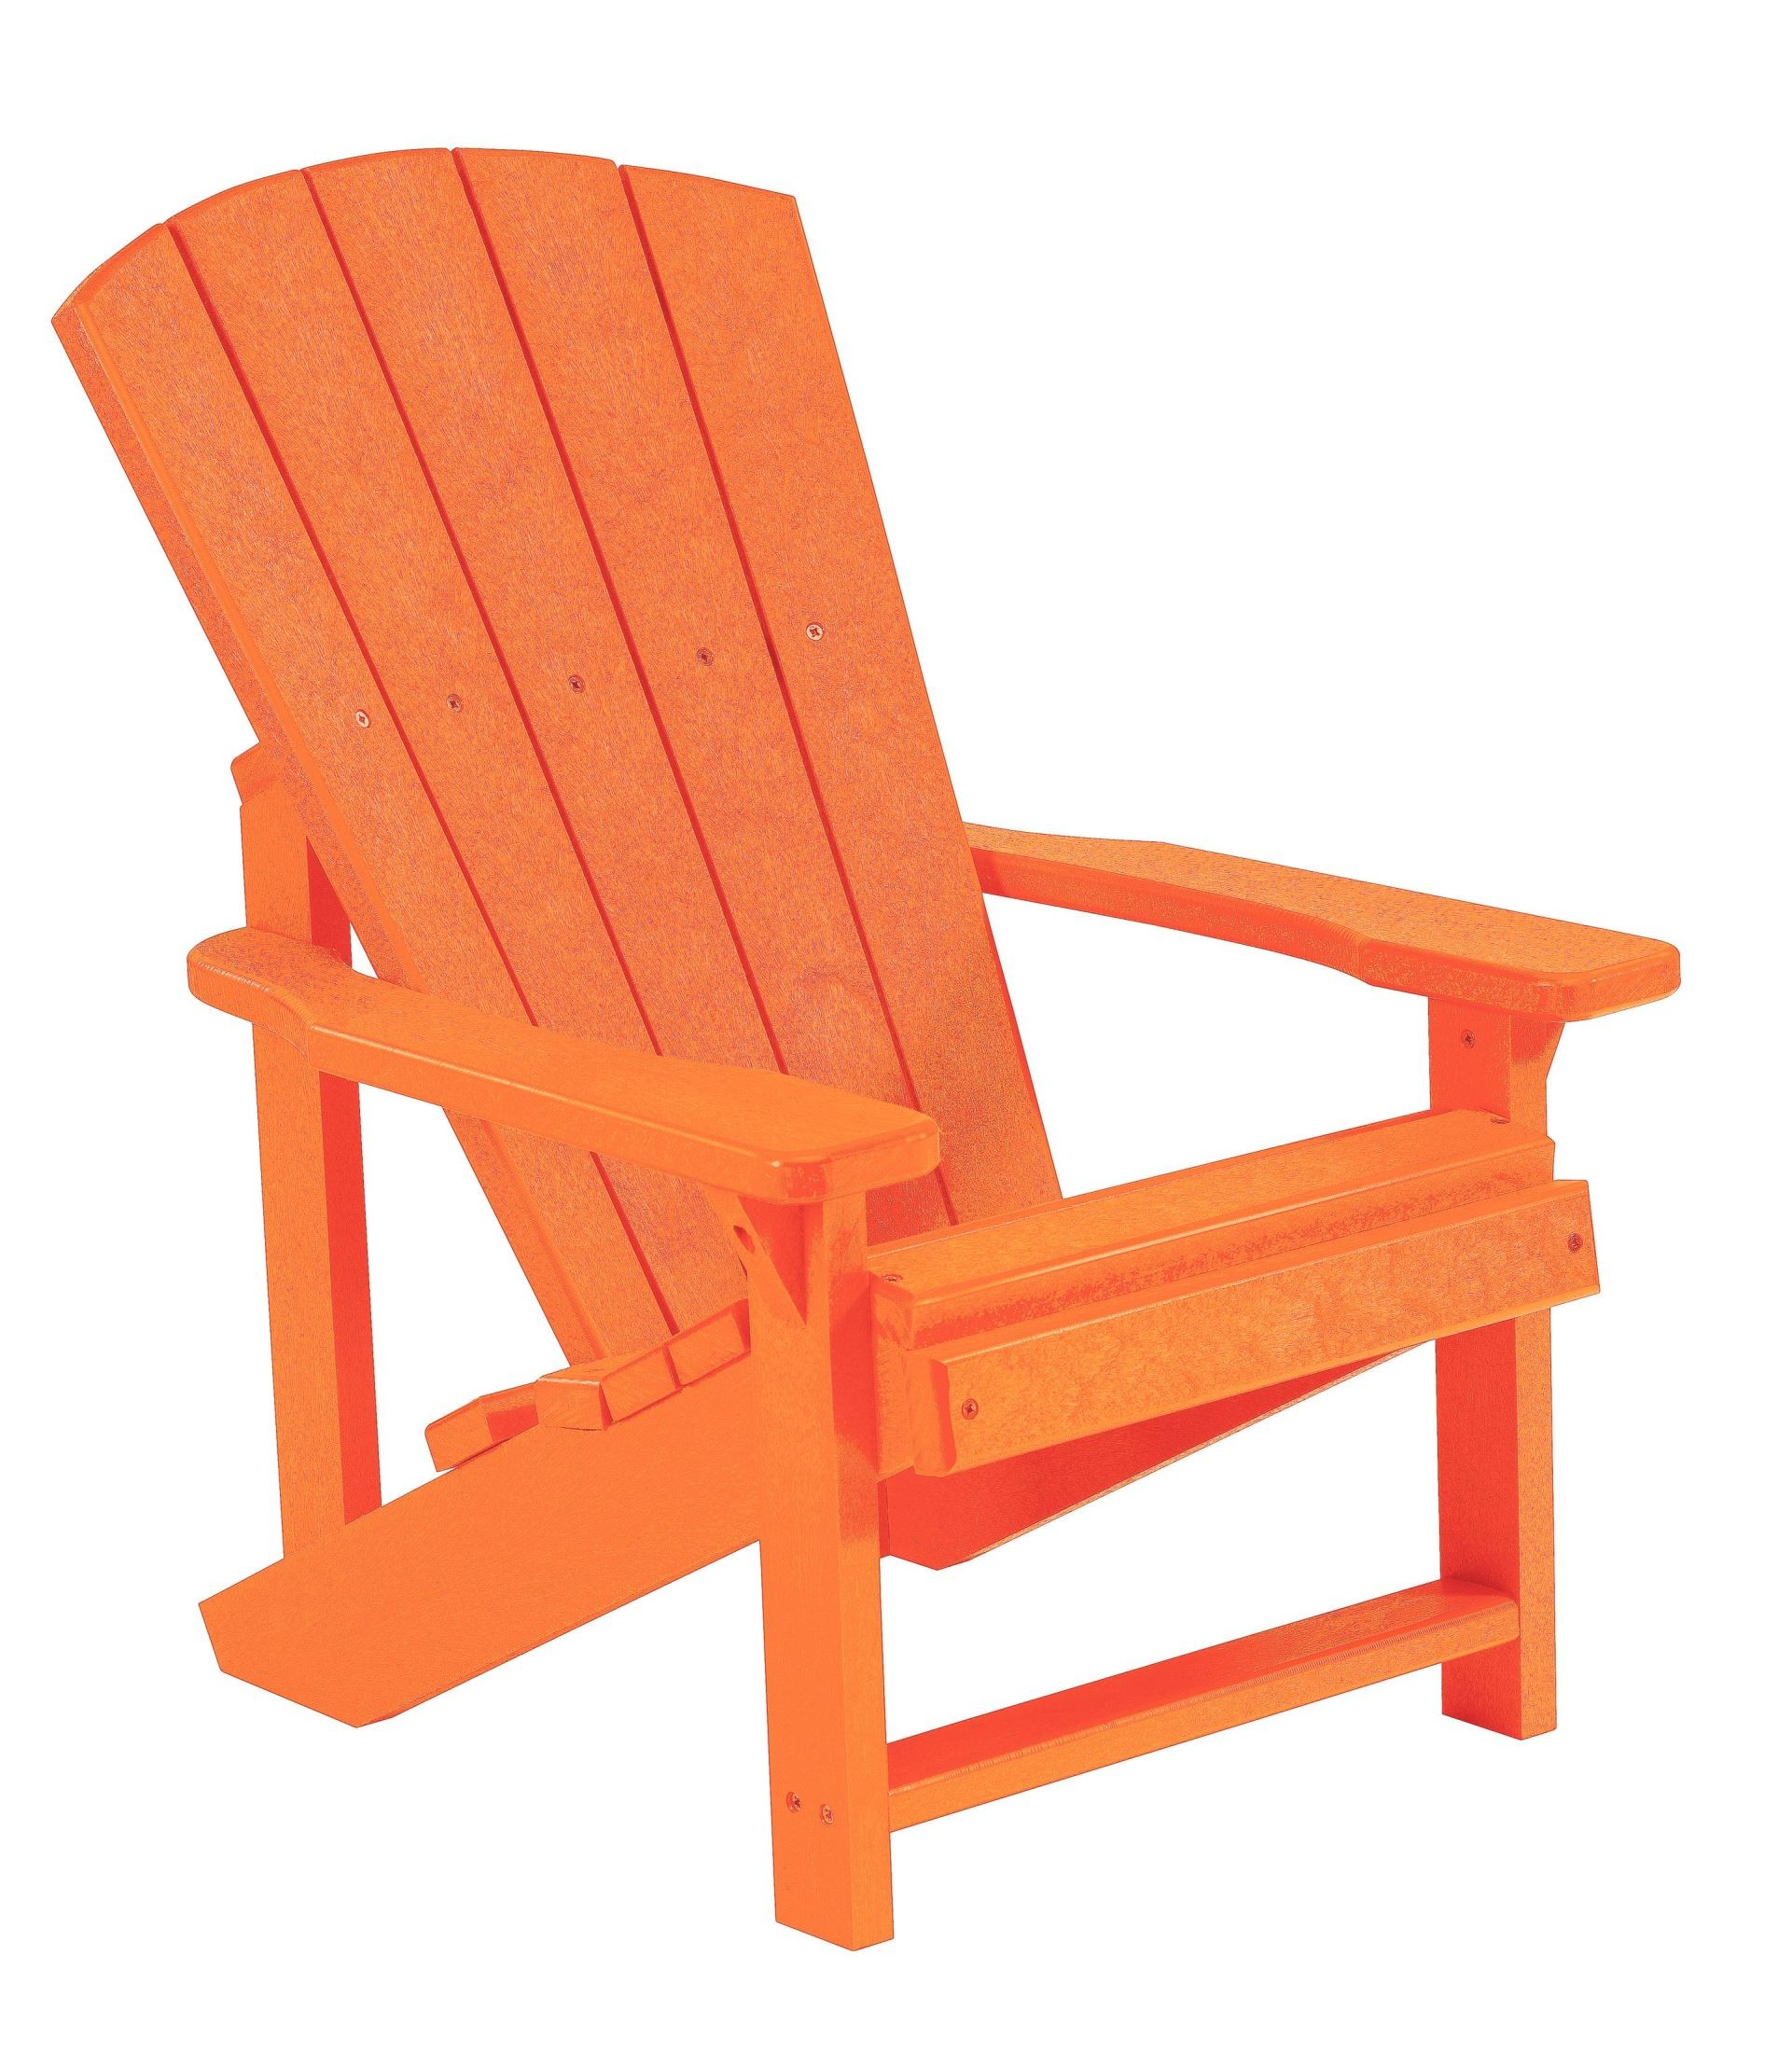 Generations Orange Kids Adirondack Chair From Cr Plastic